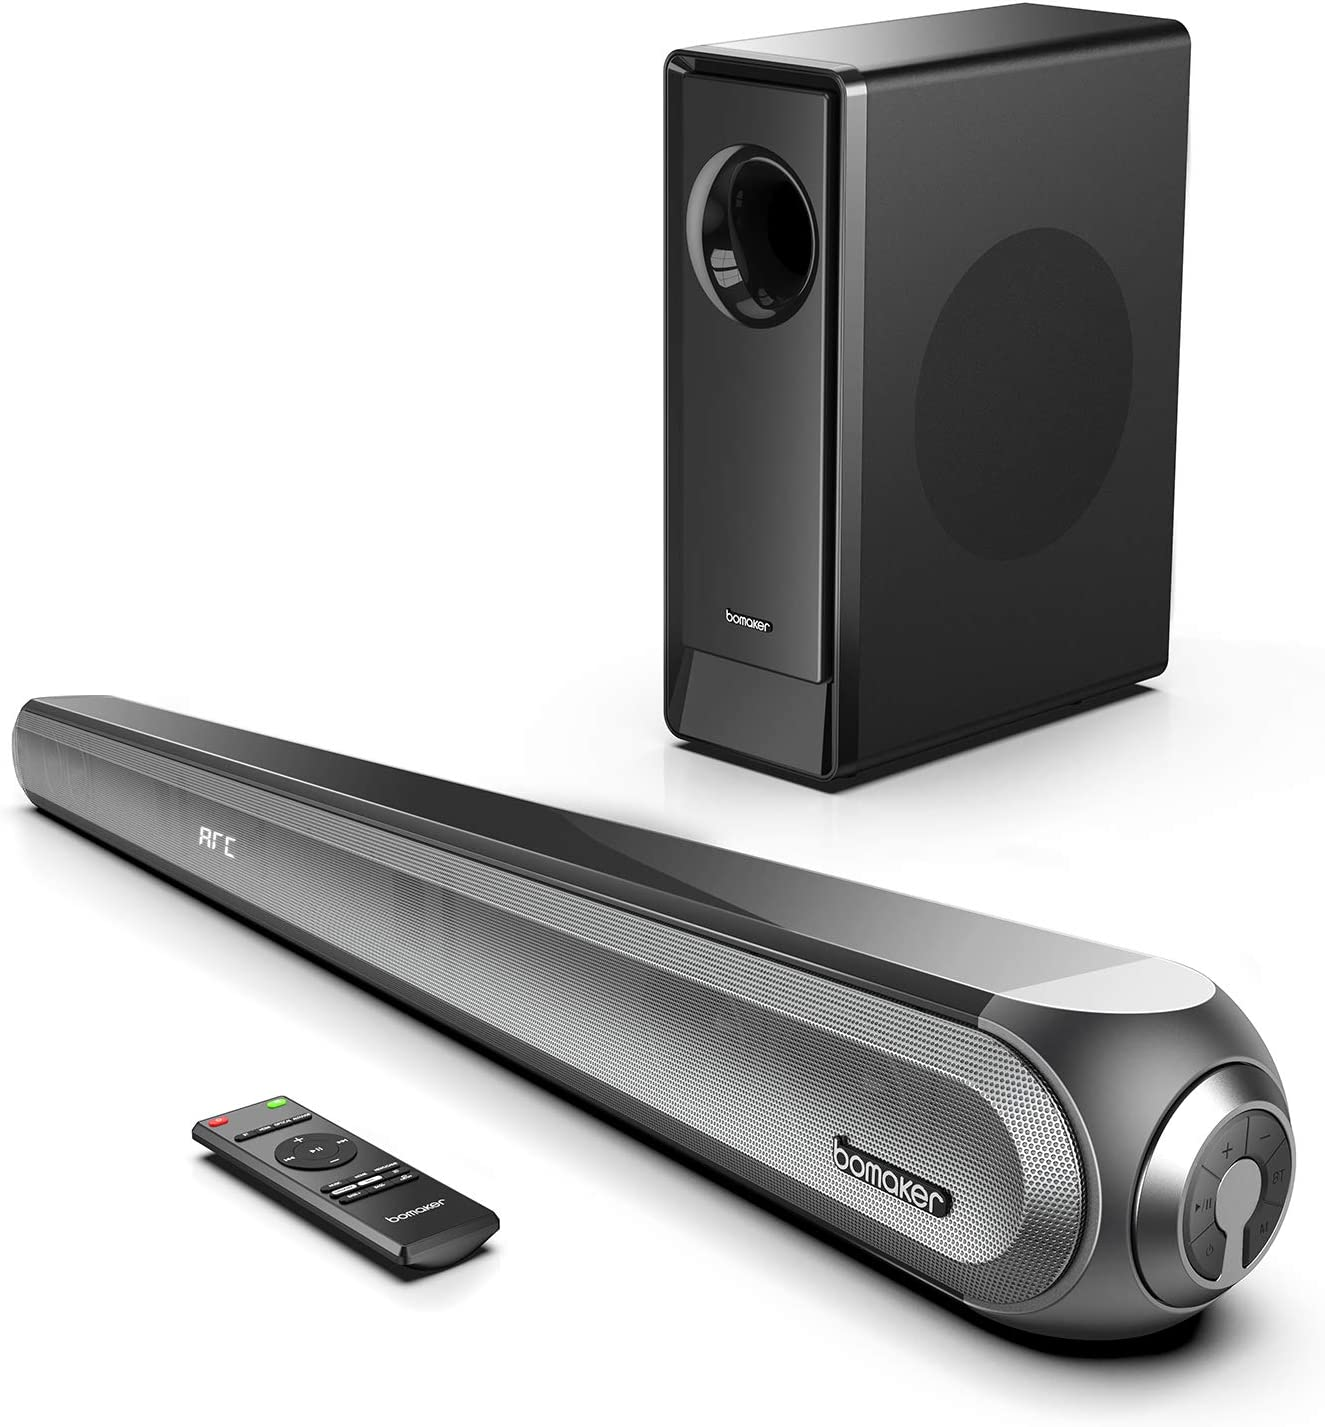 BOMAKER Sound Bars for TV with Subwoofer, w/Dolby, 240W 2.1CH 3D Surround Home Theater Audio System, Adjustable Bass 4K Ultra HD TV Speaker Soundbar, Works with HDMI ARC/Optical/Blueooth 5.0/RCA/AUX